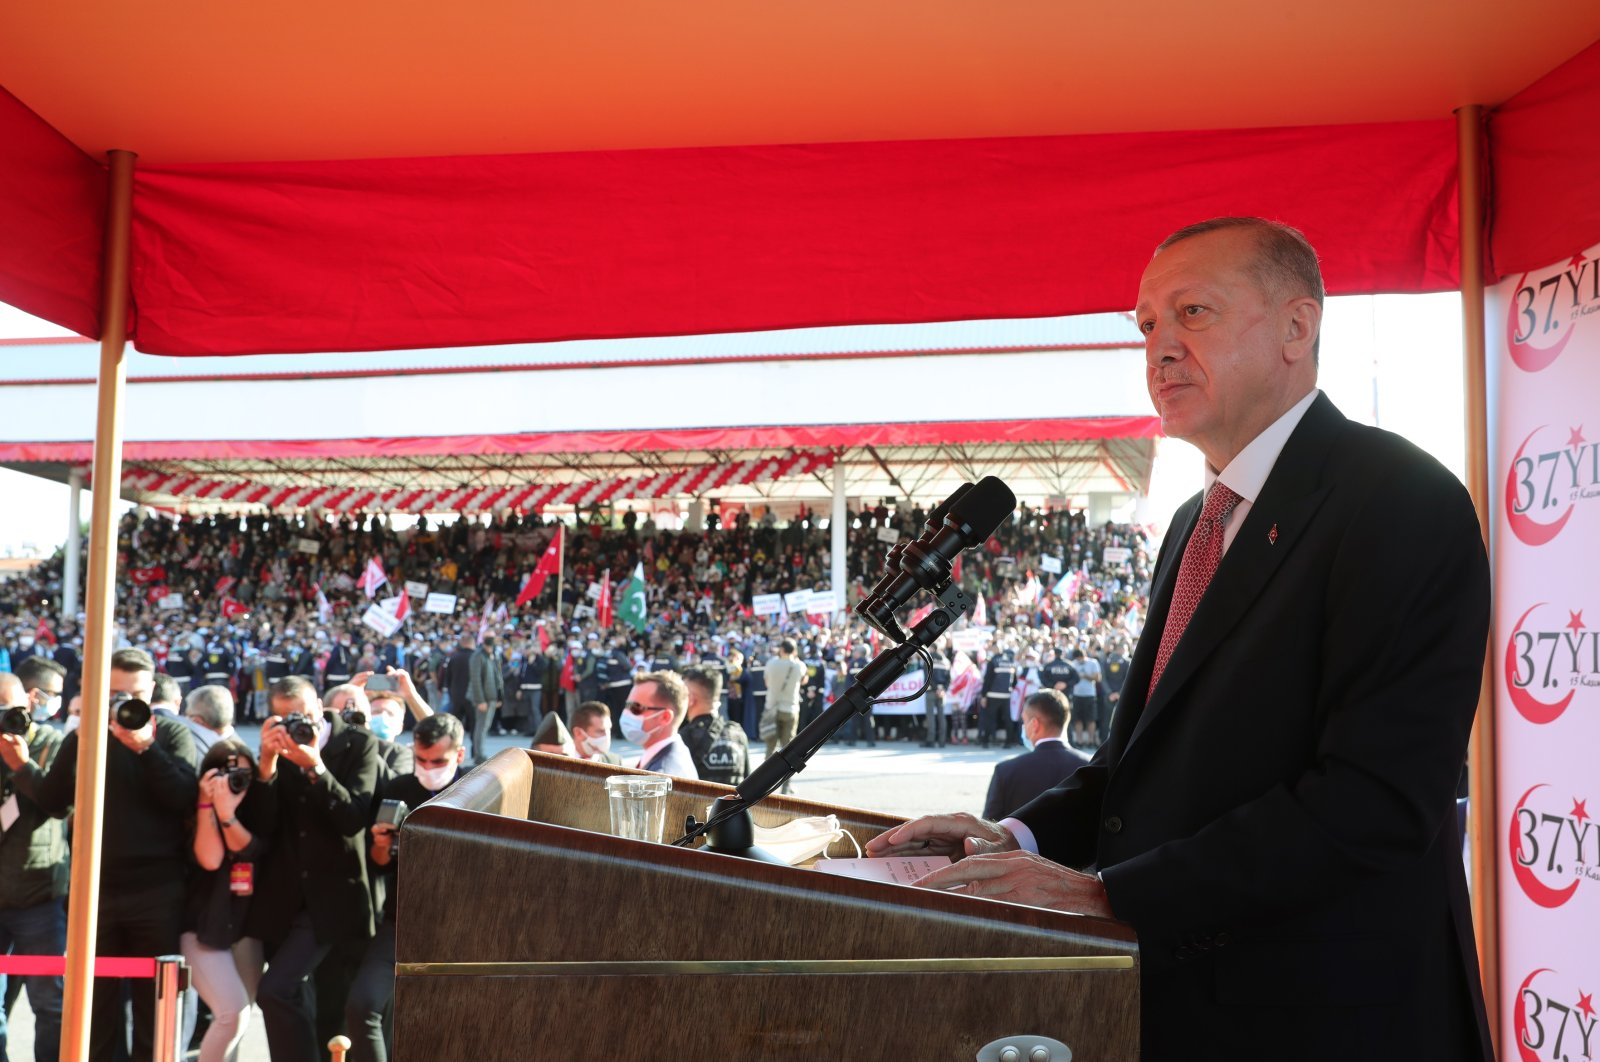 President Recep Tayyip Erdoğan speaks at a ceremony marking the 37th anniversary of the foundation of the Turkish Republic of Northern Cyprus (TRNC) in Lefkoşa (Nicosia), Nov. 15, 2020. (AA Photo)